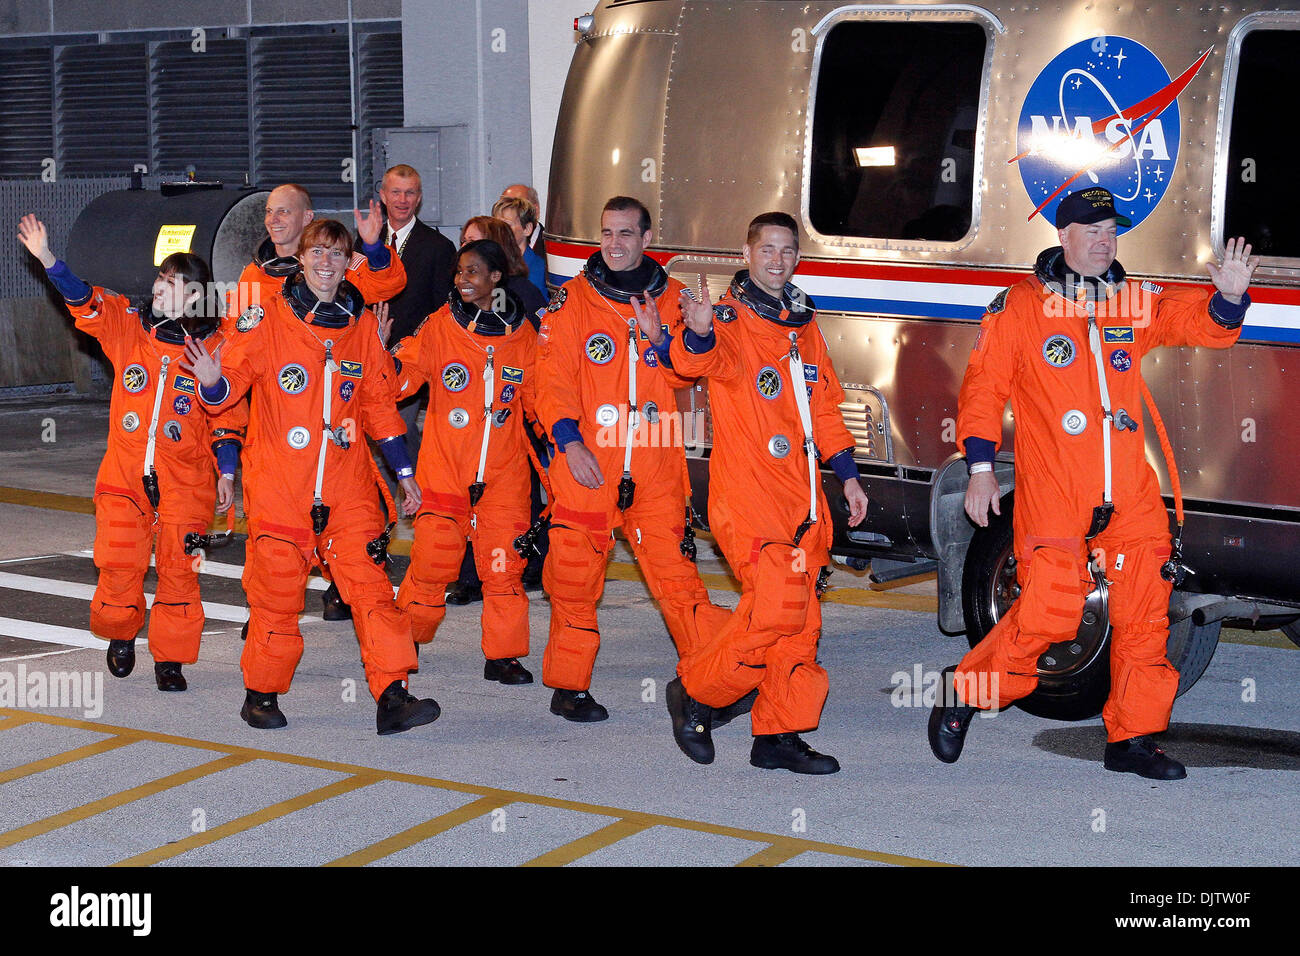 space shuttle discovery astronauts - photo #45